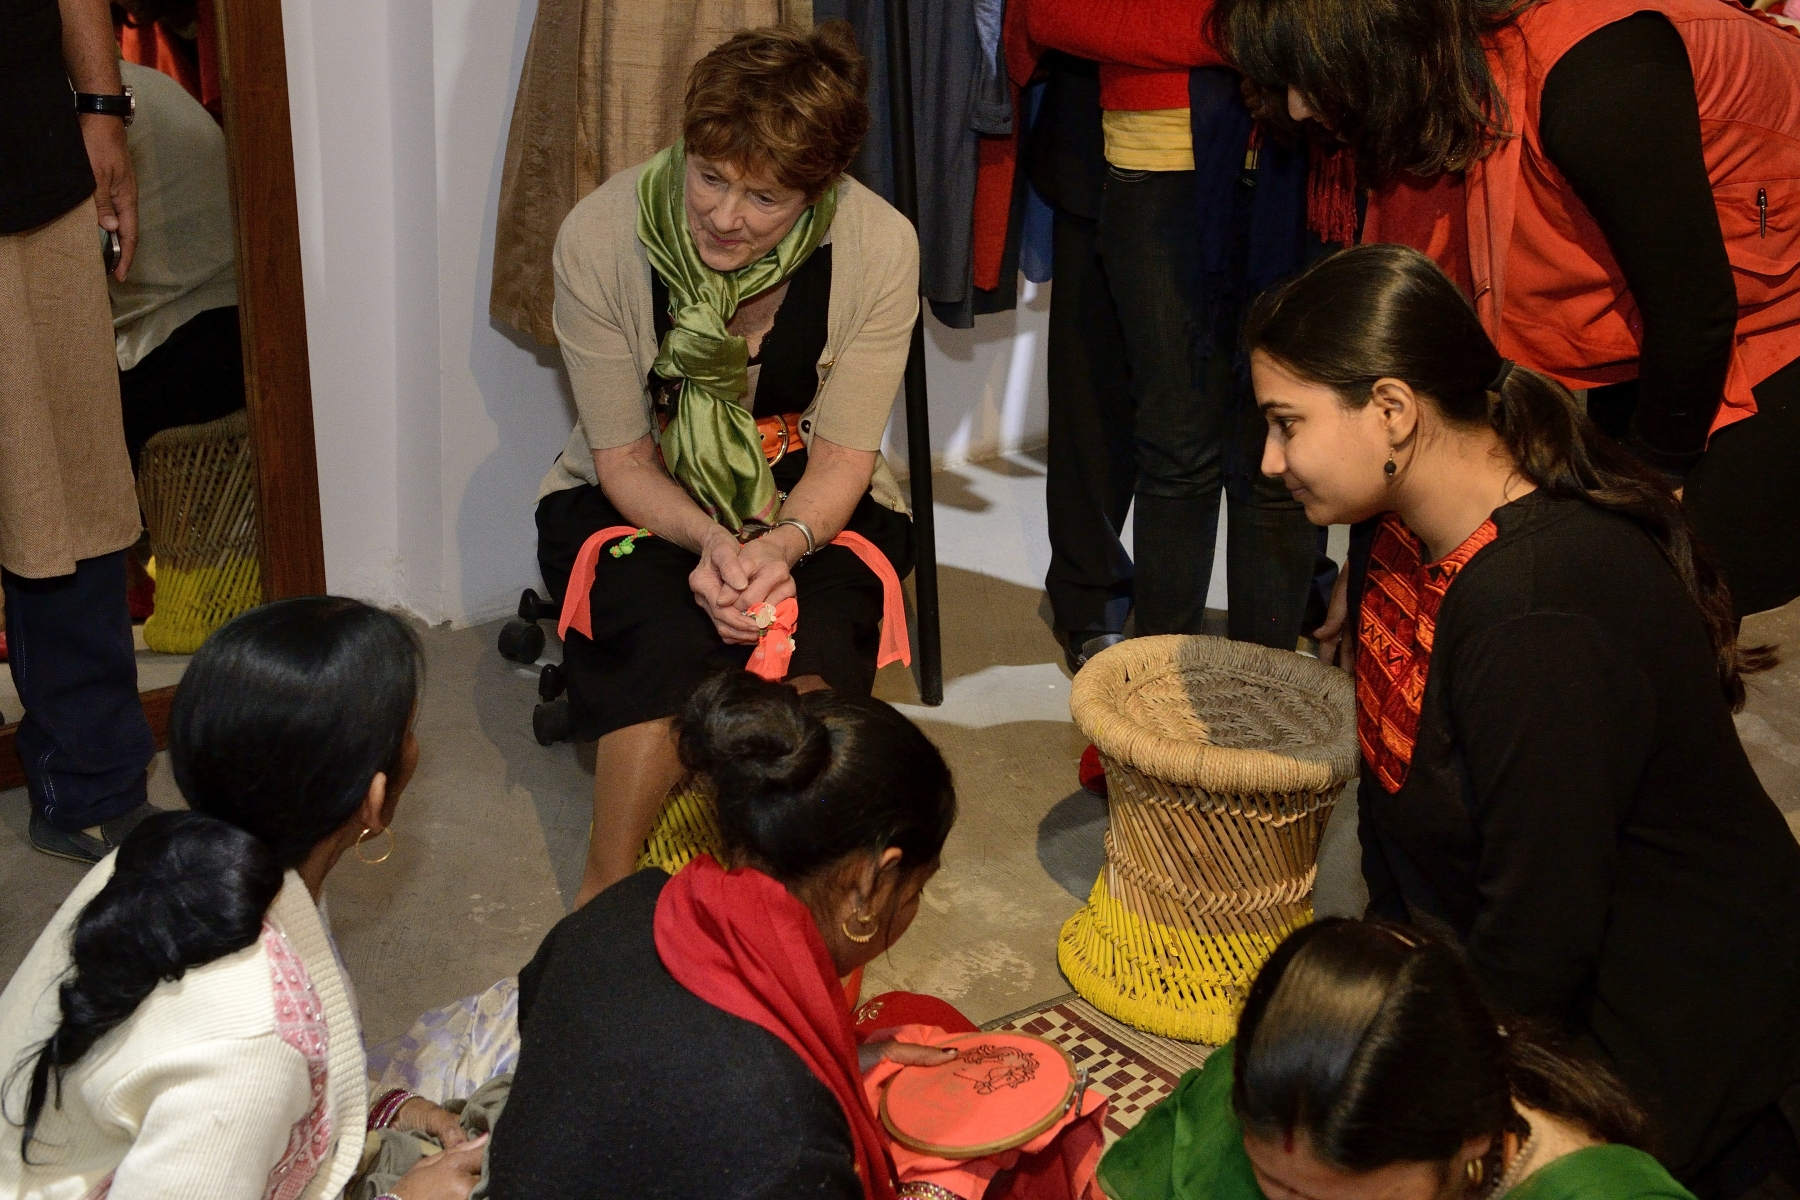 Her Excellency visited Loom Mool, a store established by SEWA Bharat—a 40-year-old trade union that represents 1.6 million women informal workers and entrepreneurs from the most marginalized groups of society.